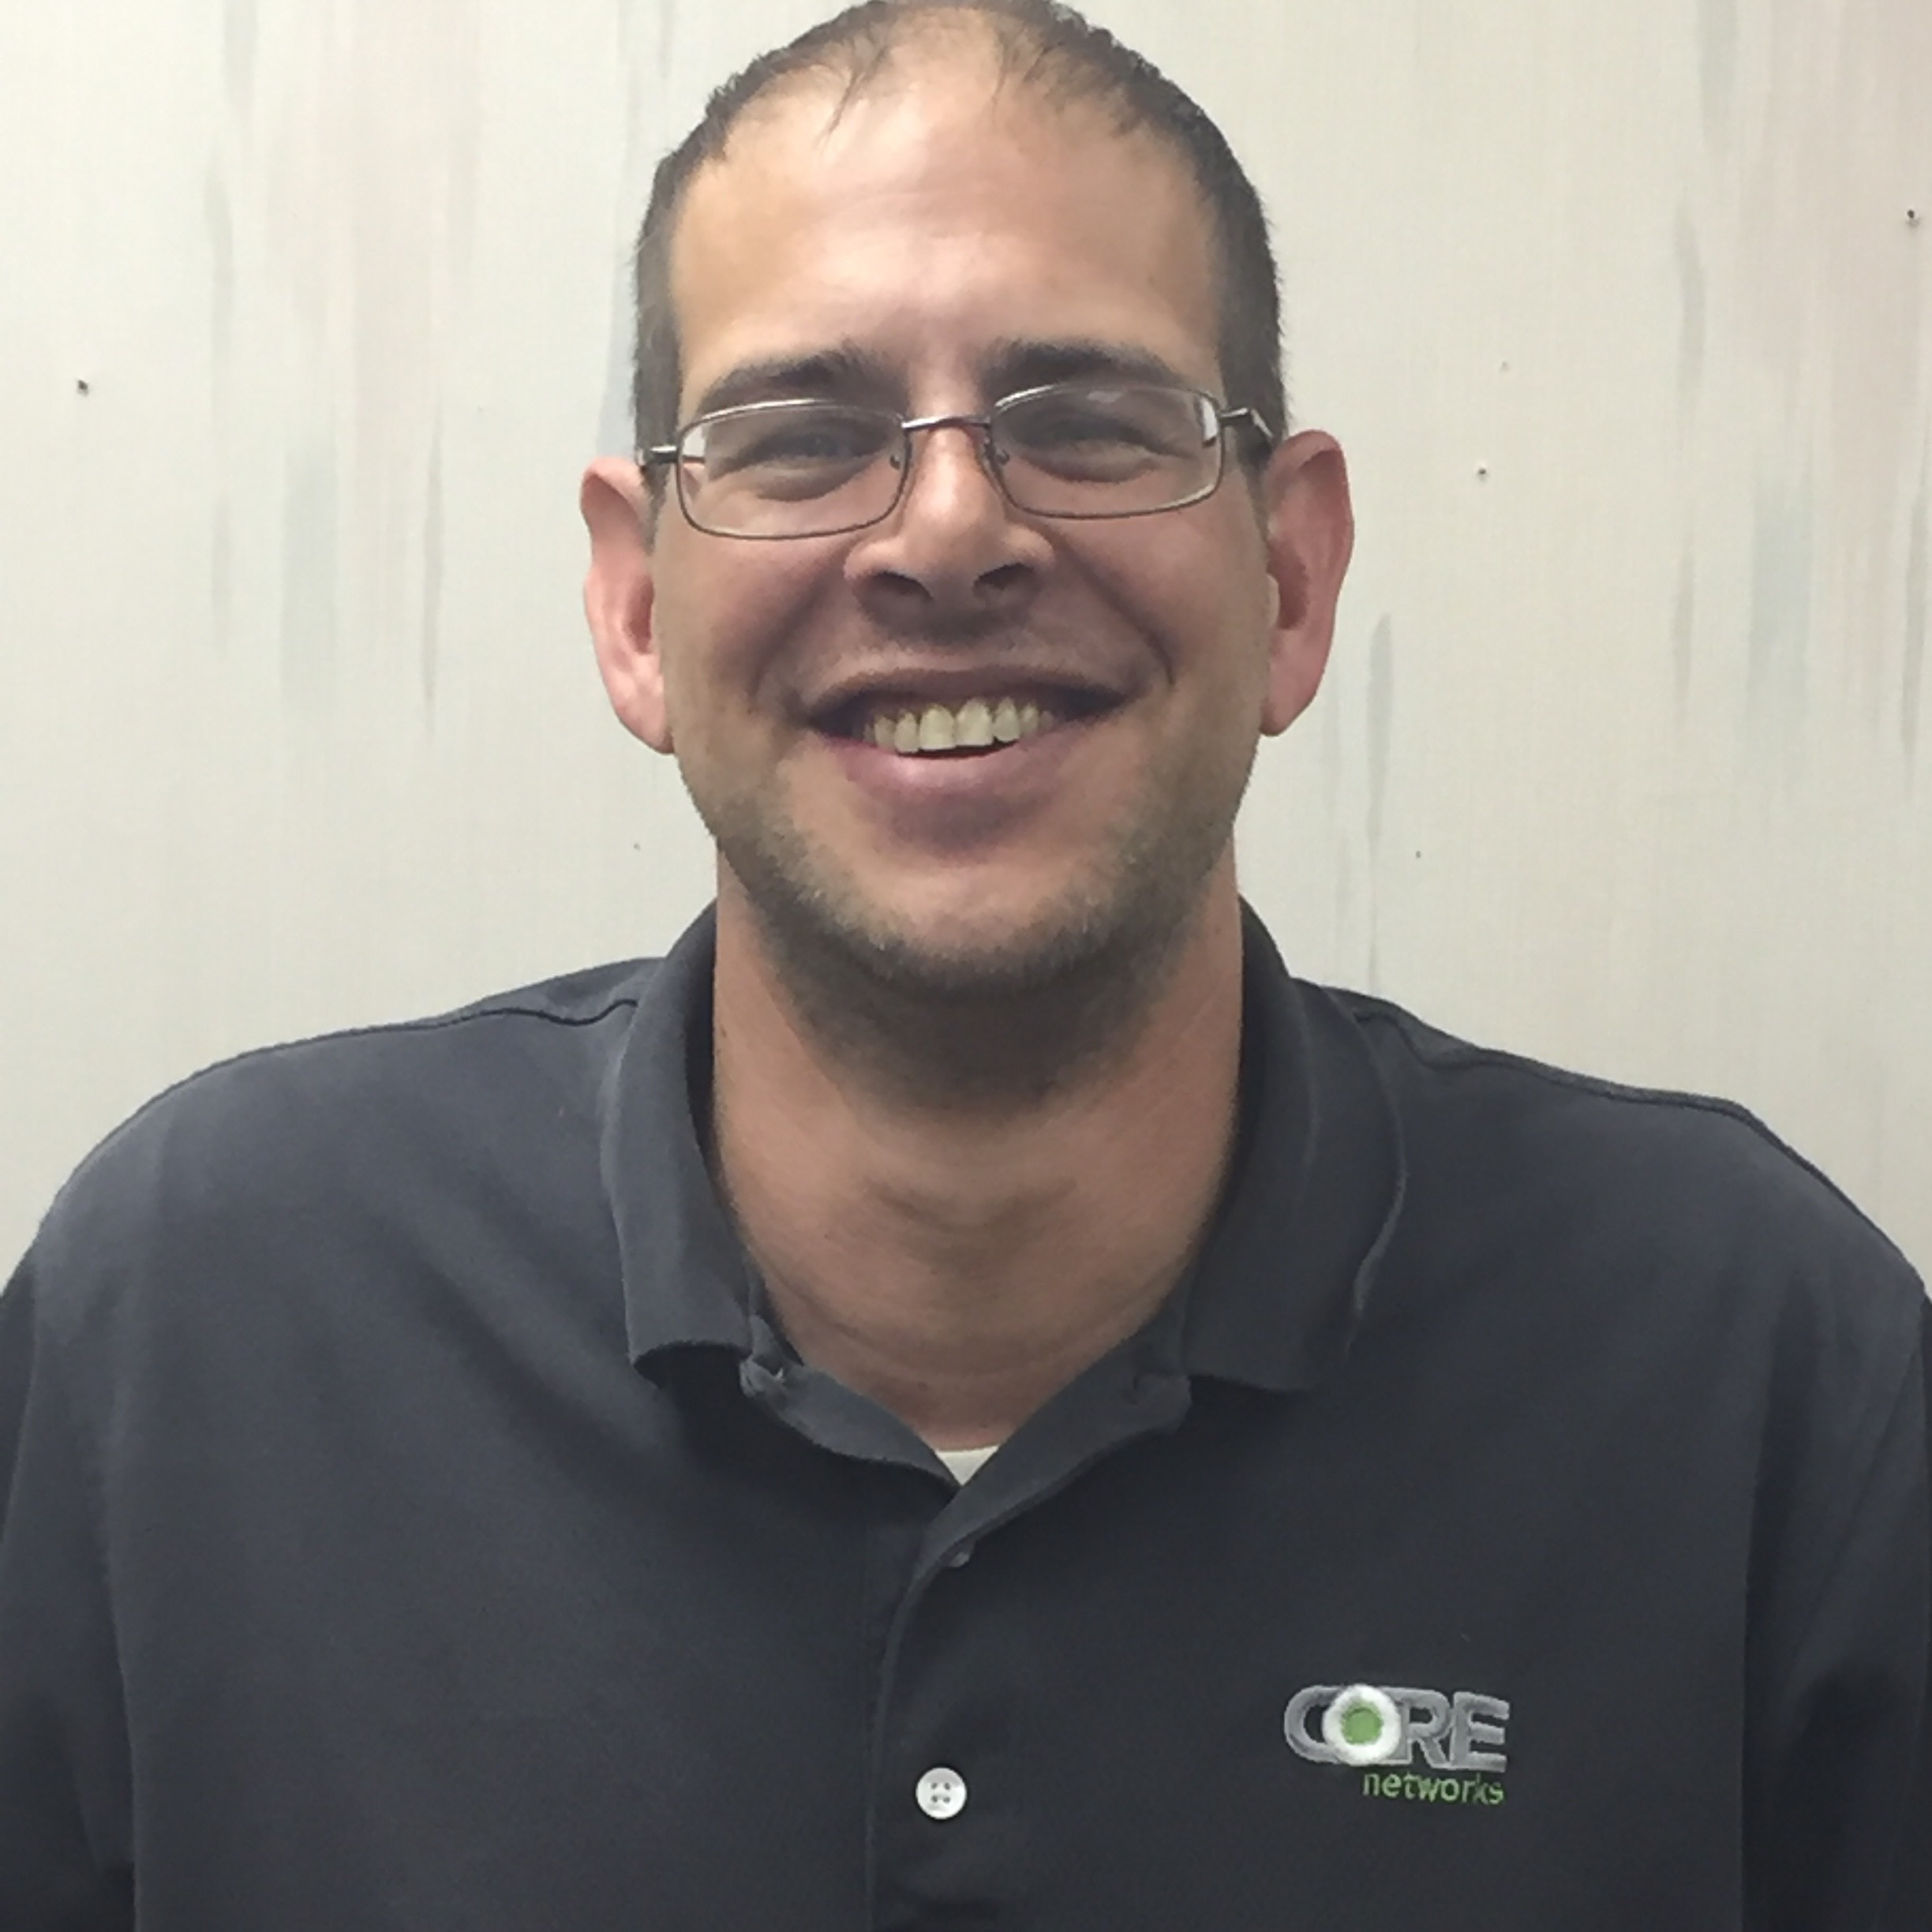 Gerry Solis - Computer Maintenance, Managed Services Technician